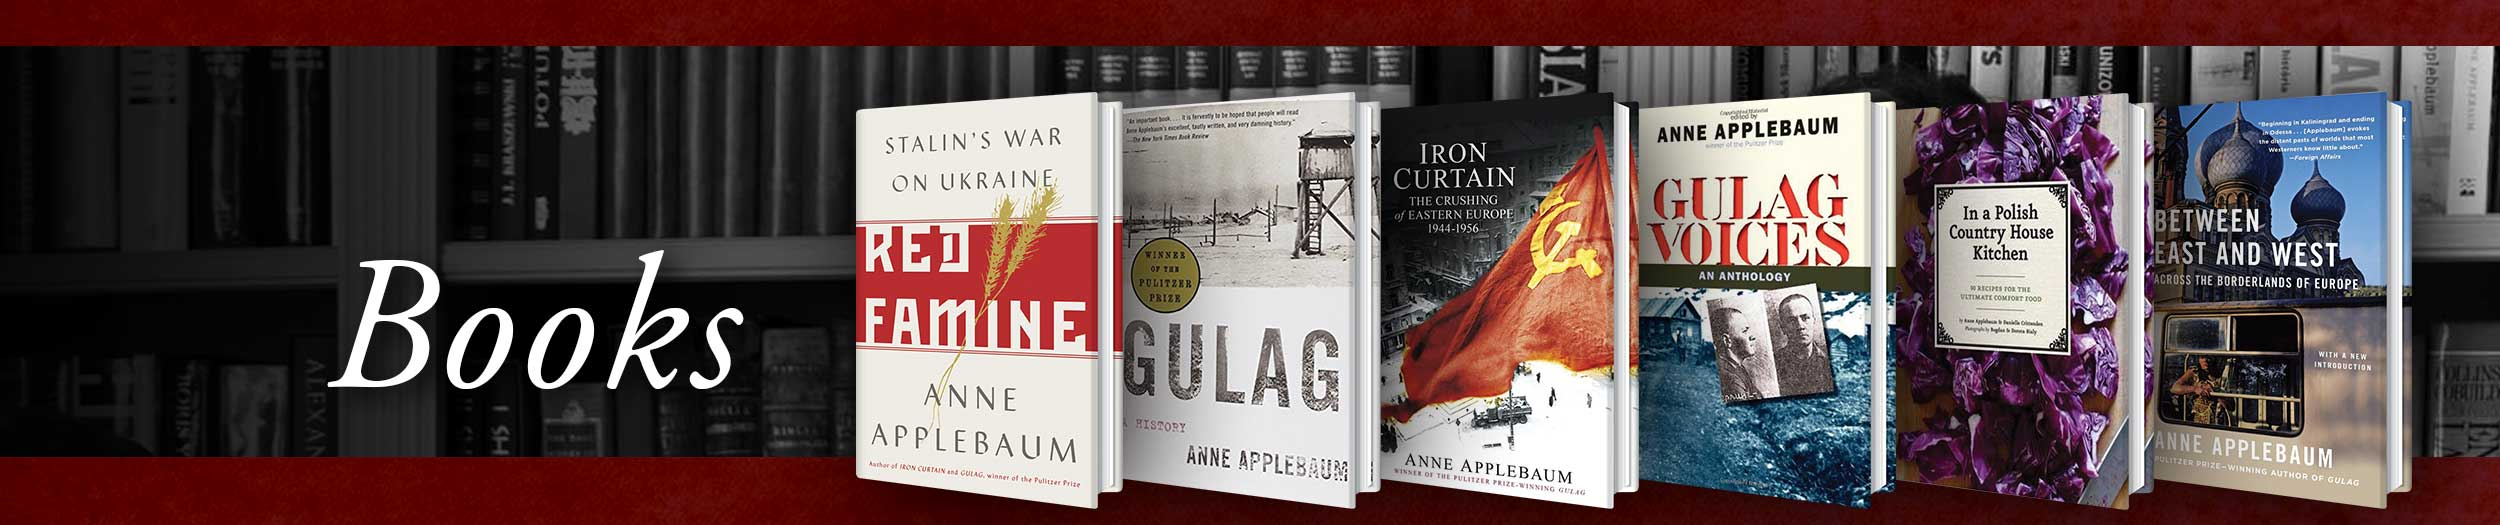 All Books by Anne Applebaum